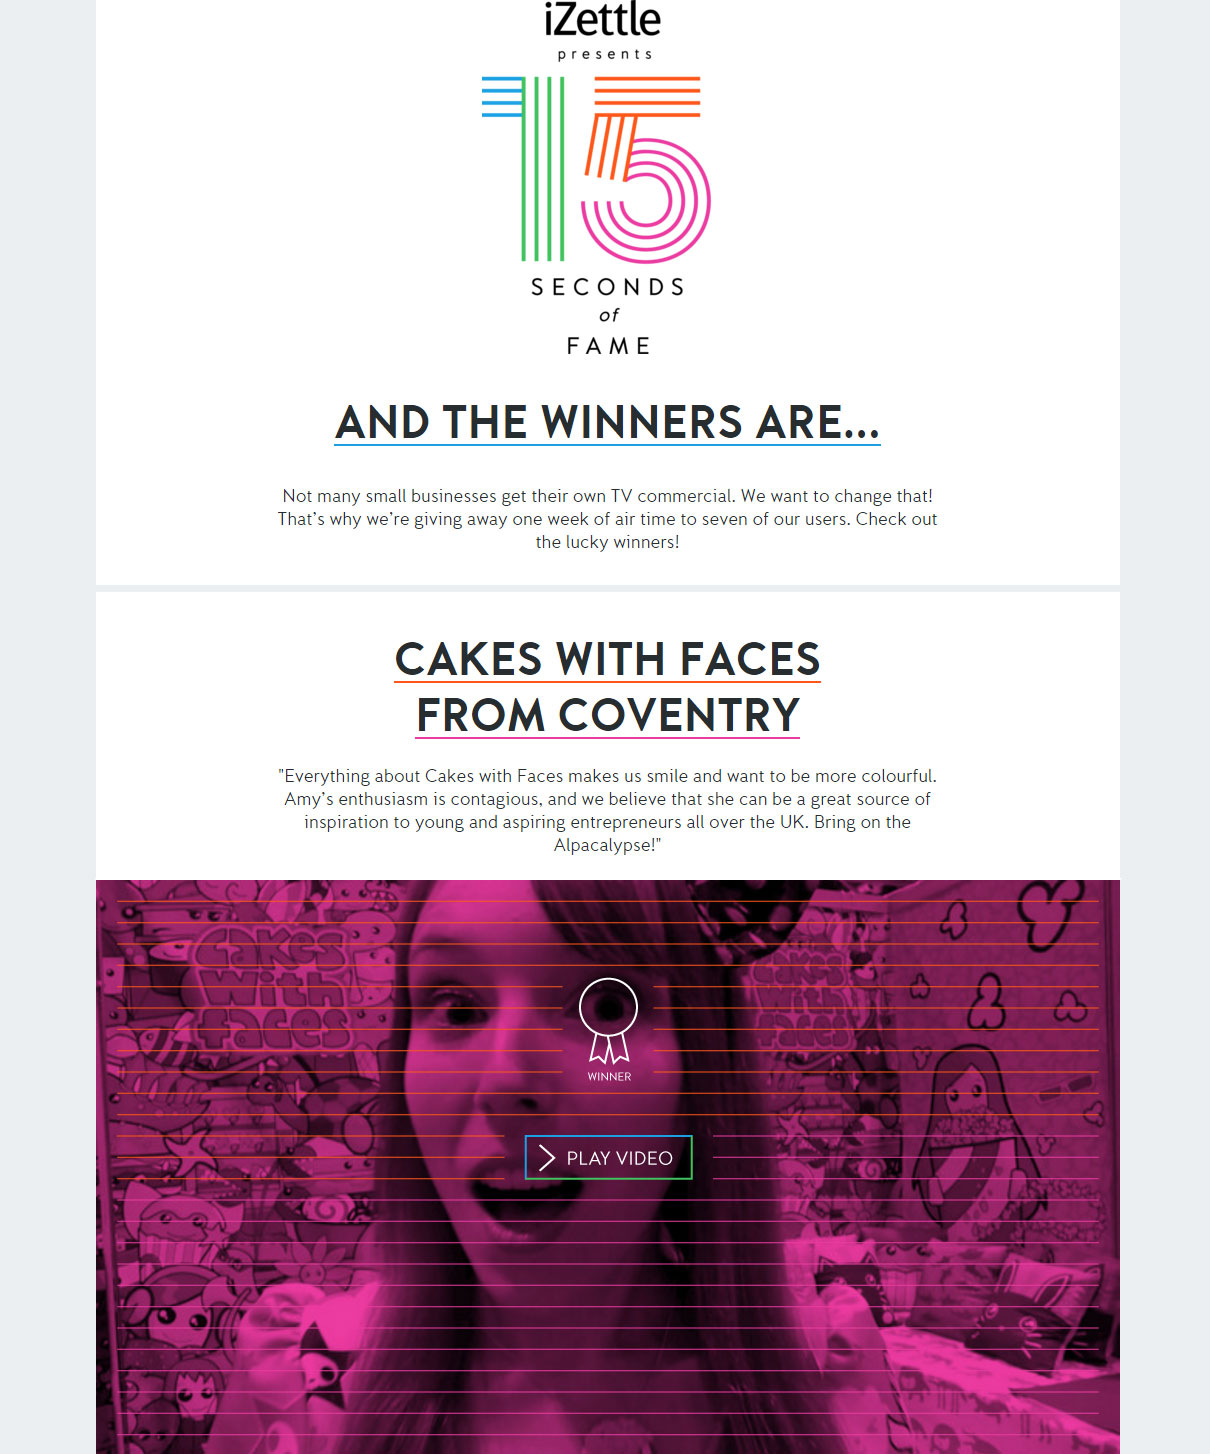 iZettle 15 Seconds of Fame winner - Cakes with Faces